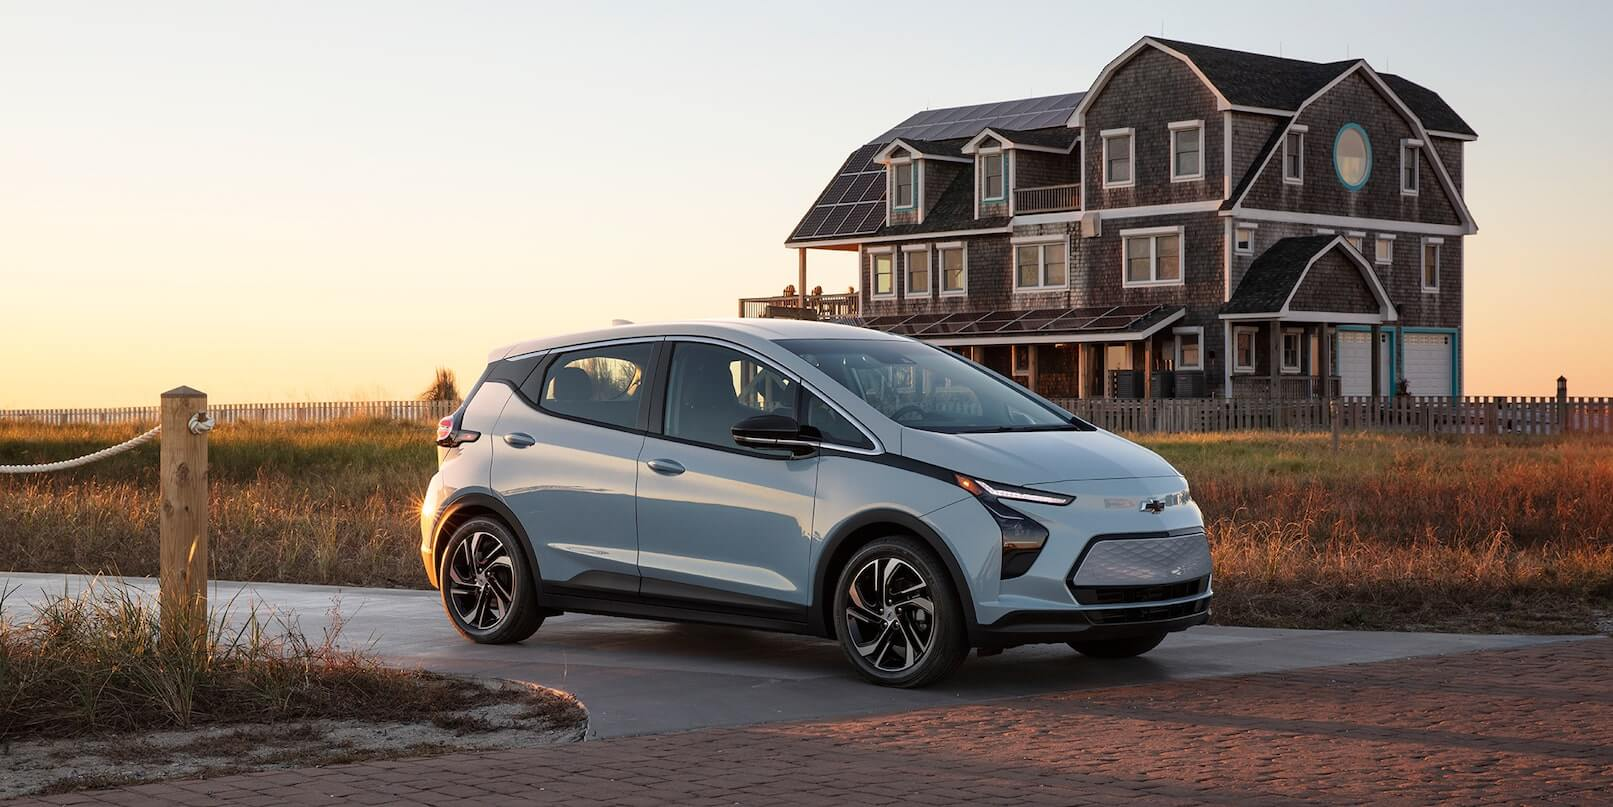 Right-side exterior view of the 2022 Chevrolet Bolt EV driving on the road.